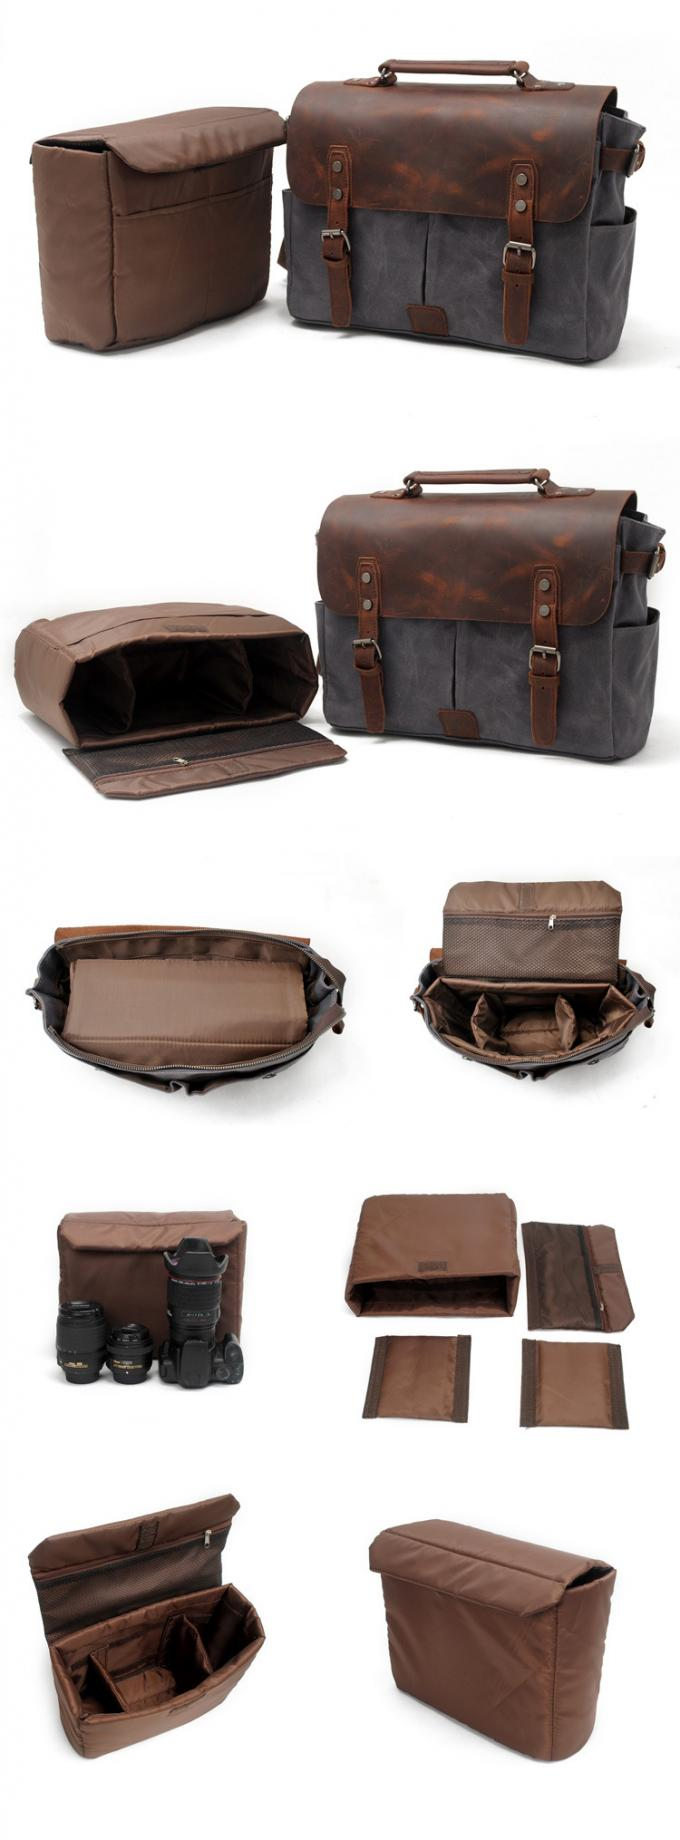 CL-900 Gray Classical Design Waxed Canvas and Leather Camera Bag